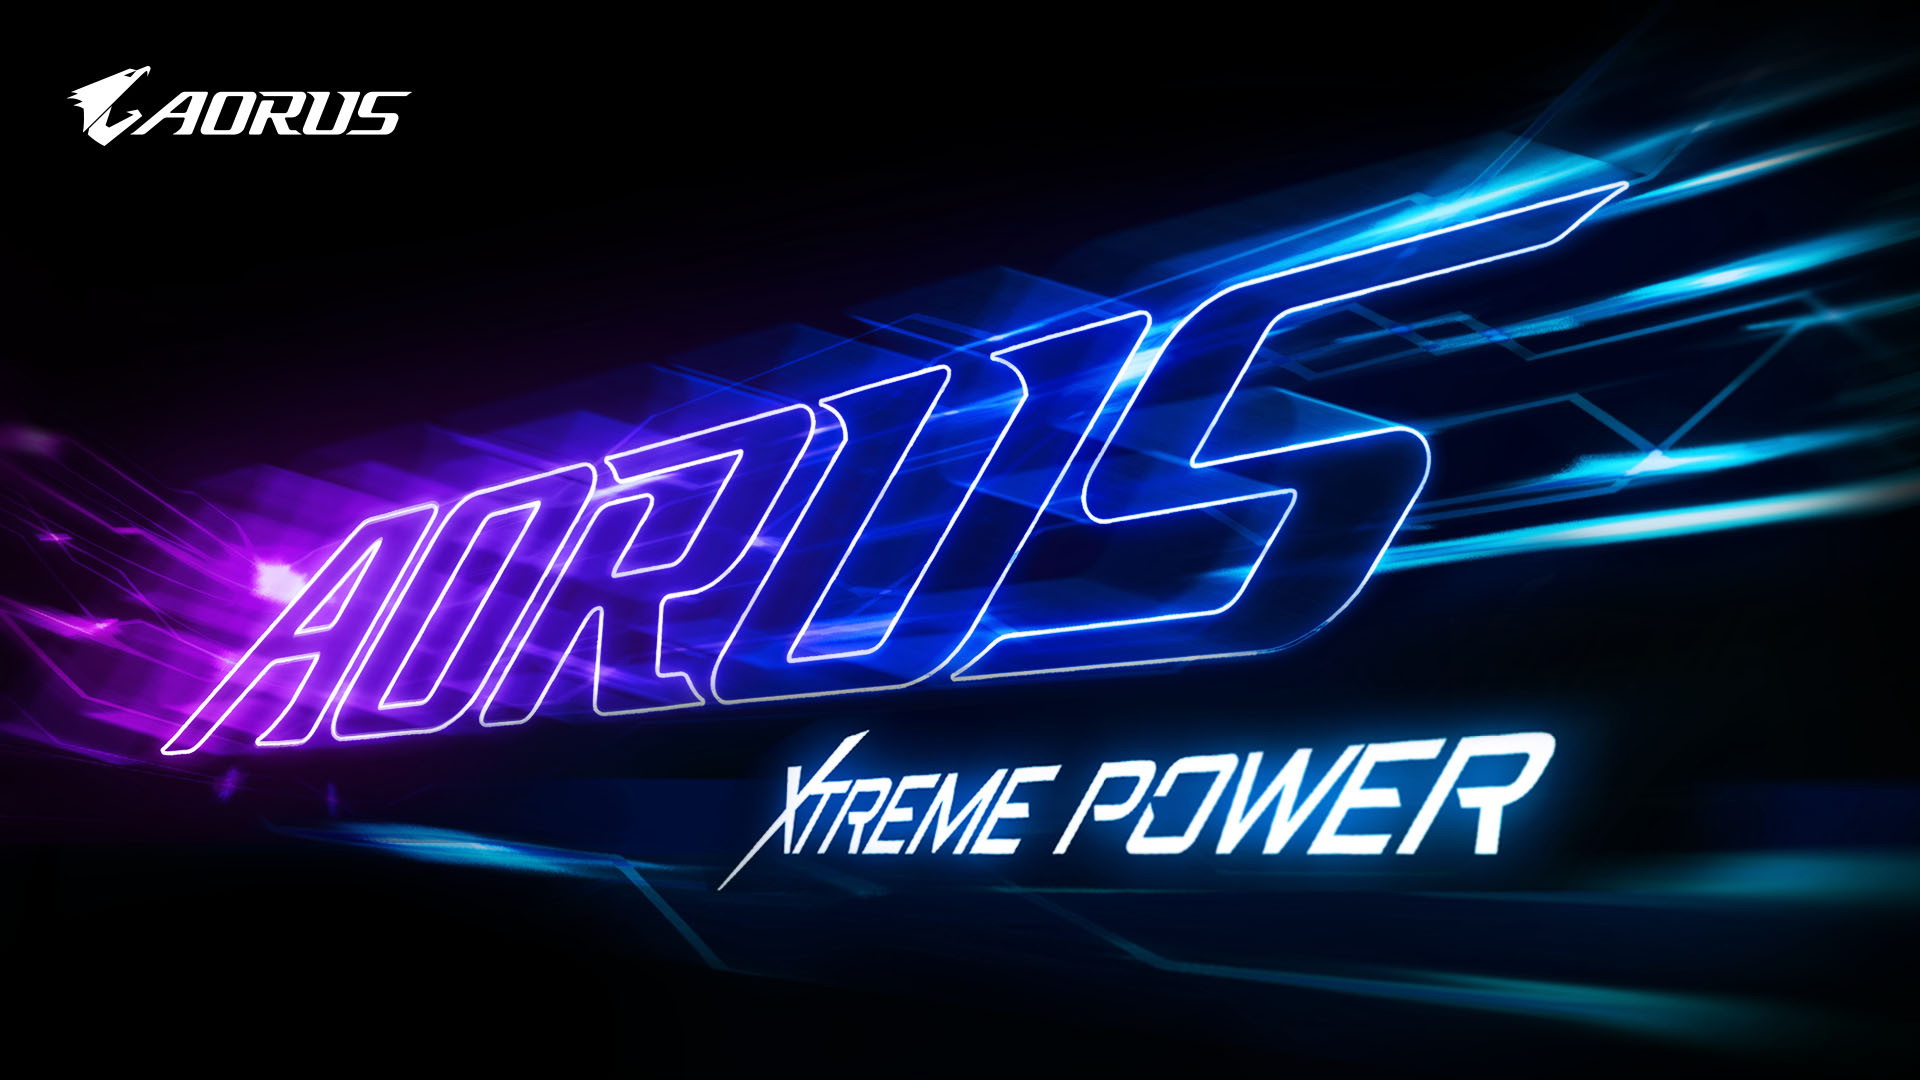 GIGABYTE Showcases Newest AORUS High-End Gaming Solutions For Maximizing The User Experience